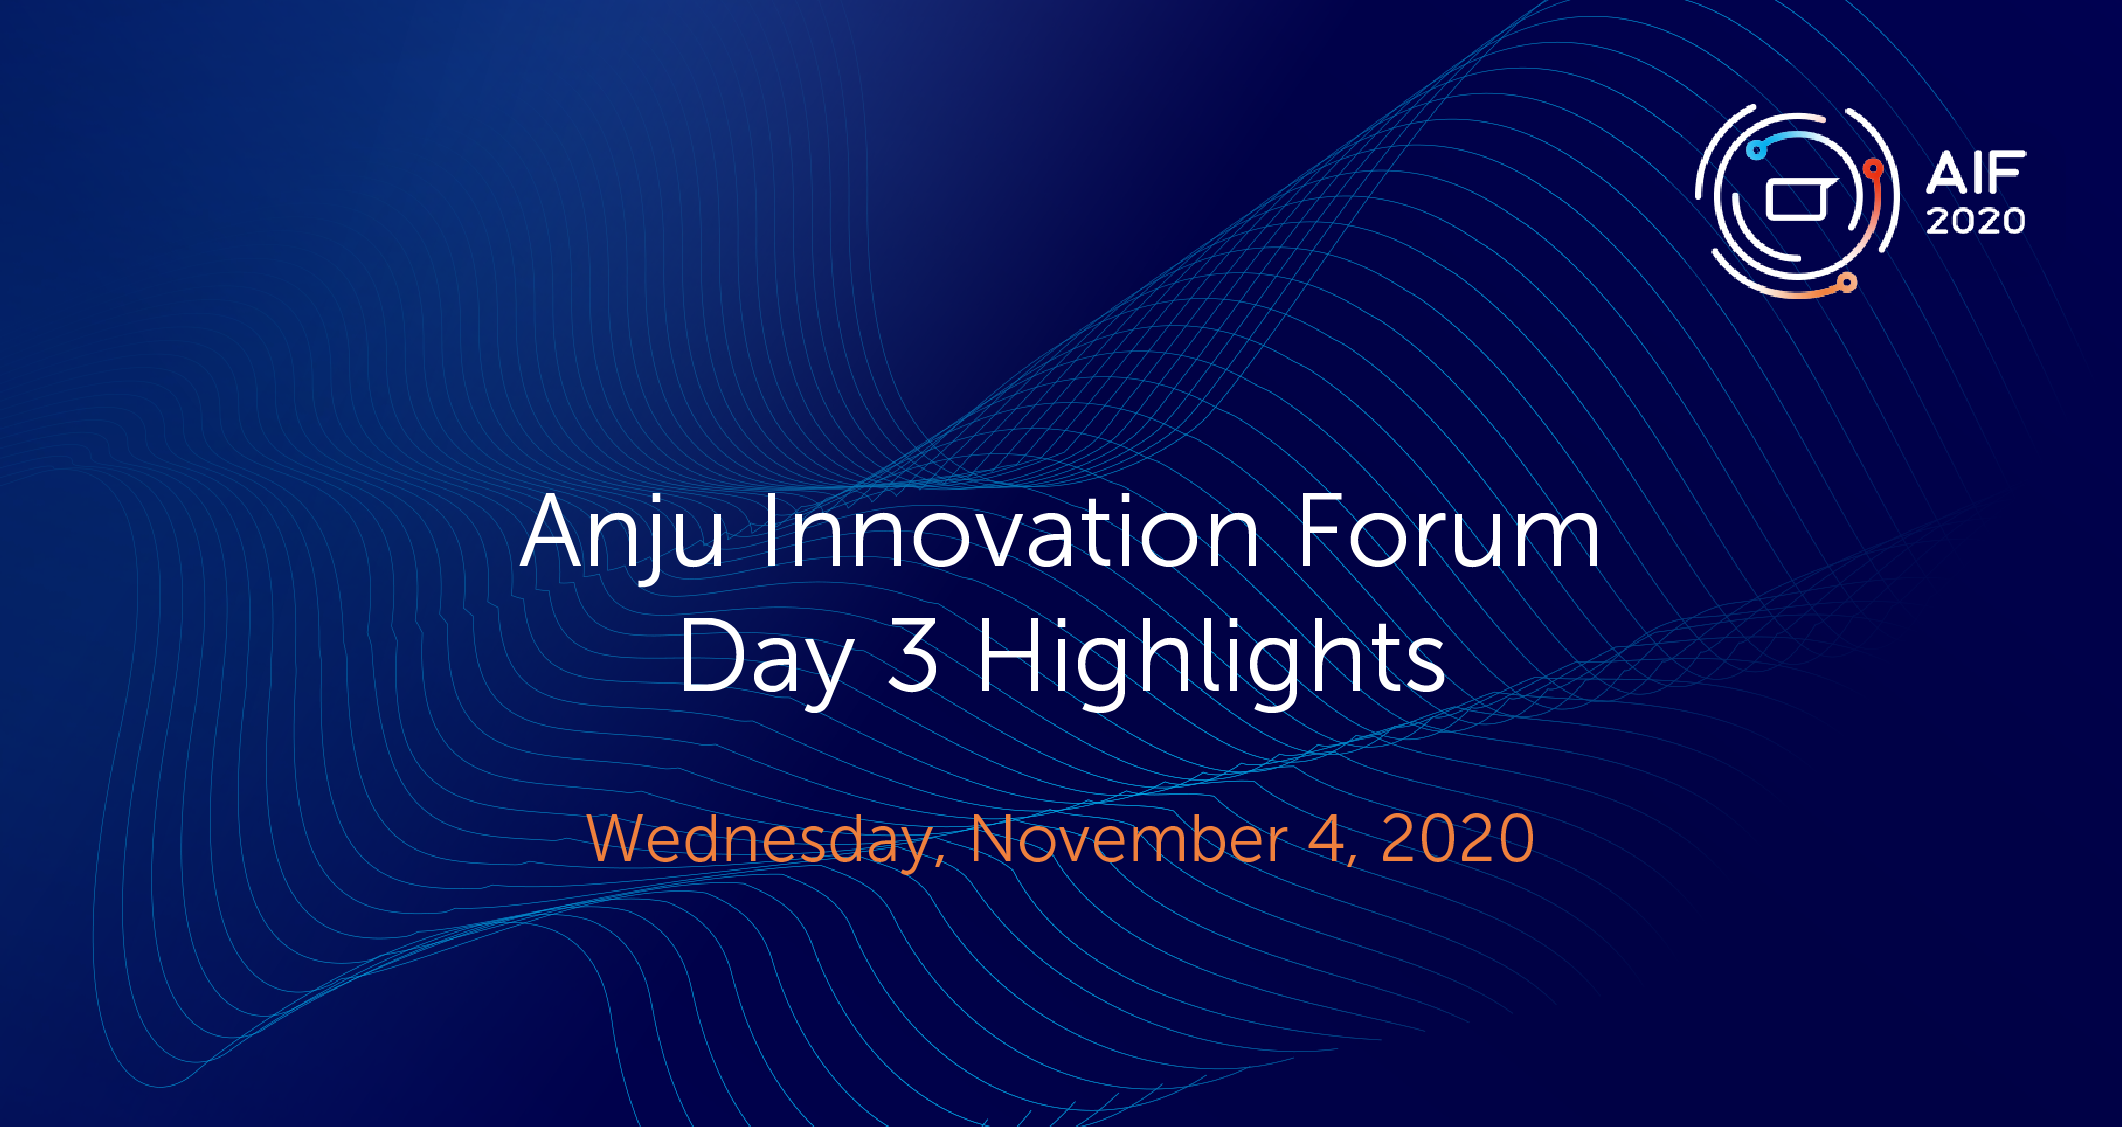 Anju Innovation Forum Day 3 Highlights